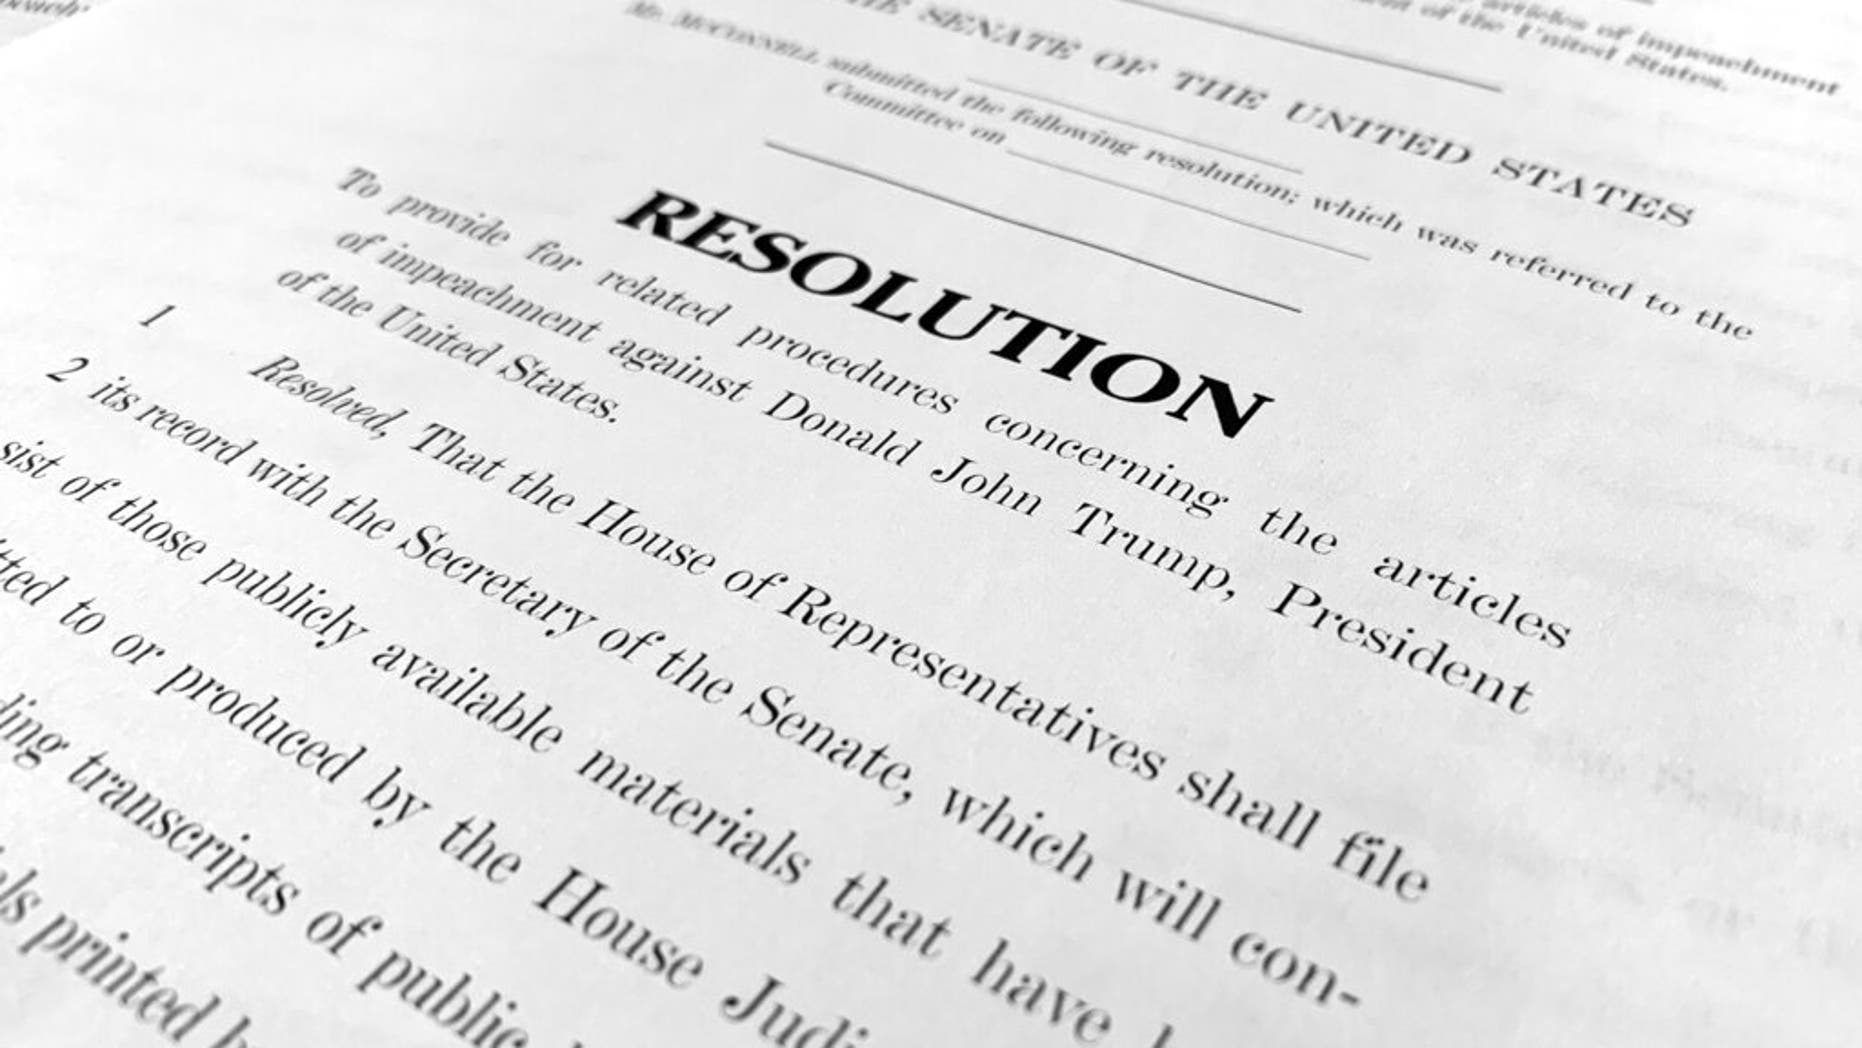 A copy of a Senate draft resolution to be offered by Senate Majority Leader Mitch McConnell, R-Ky., regarding the procedures during the impeachment trial of President Donald Trump in the U.S. Senate. (AP Photo/Jon Elswick)